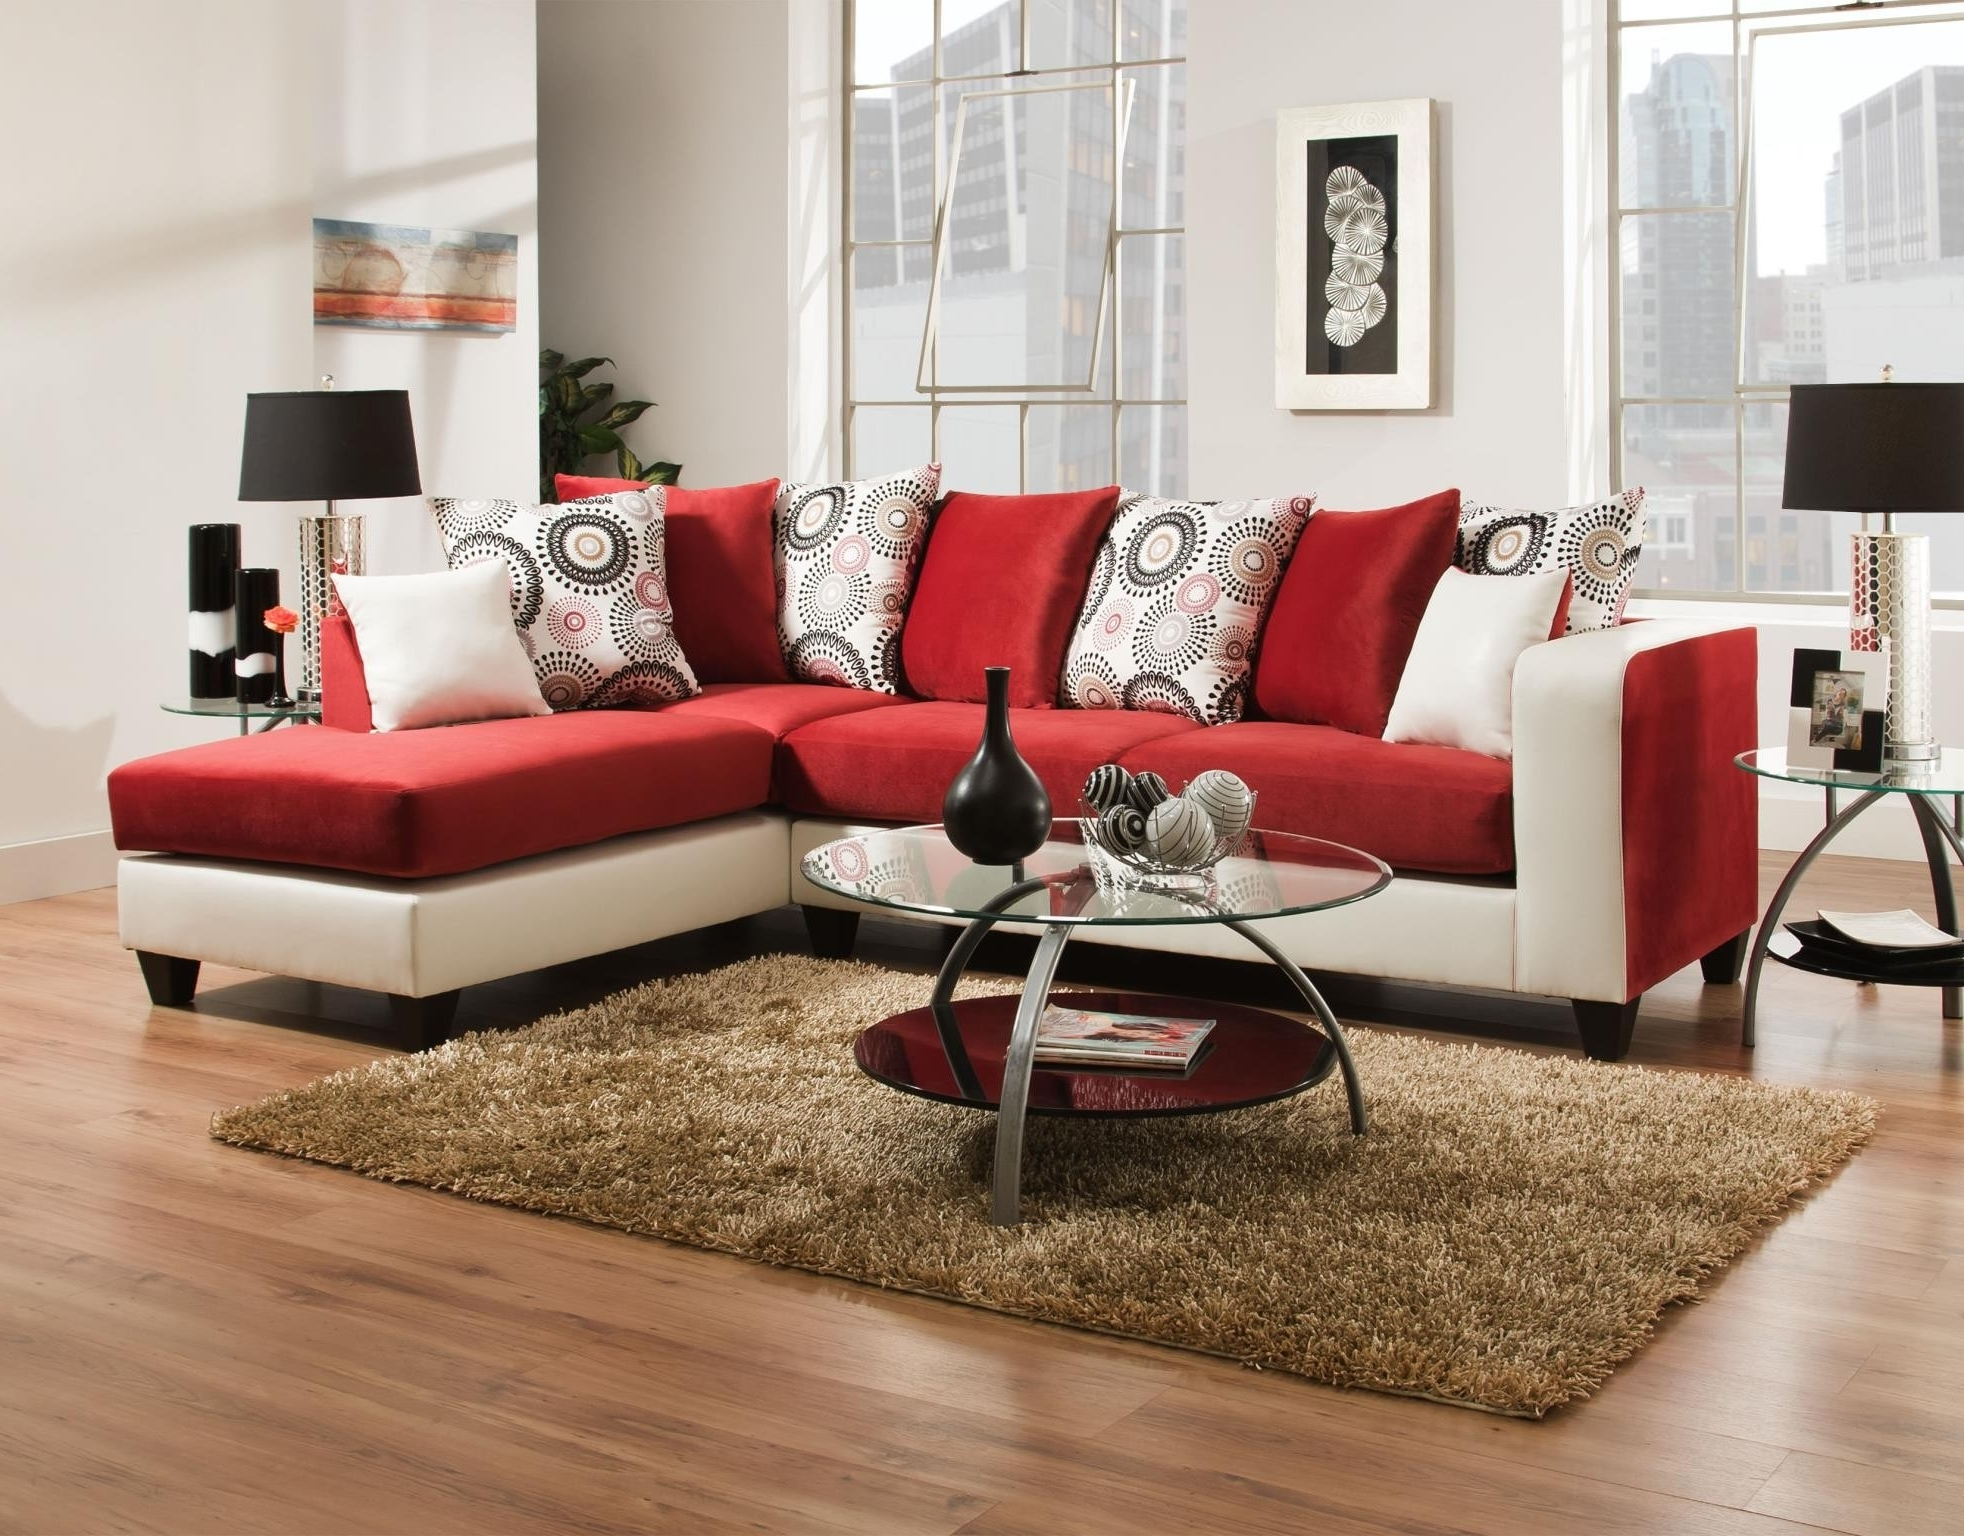 Tampa Sectional Sofas In Best And Newest New Sectional Sofa Tampa – Buildsimplehome (View 11 of 15)